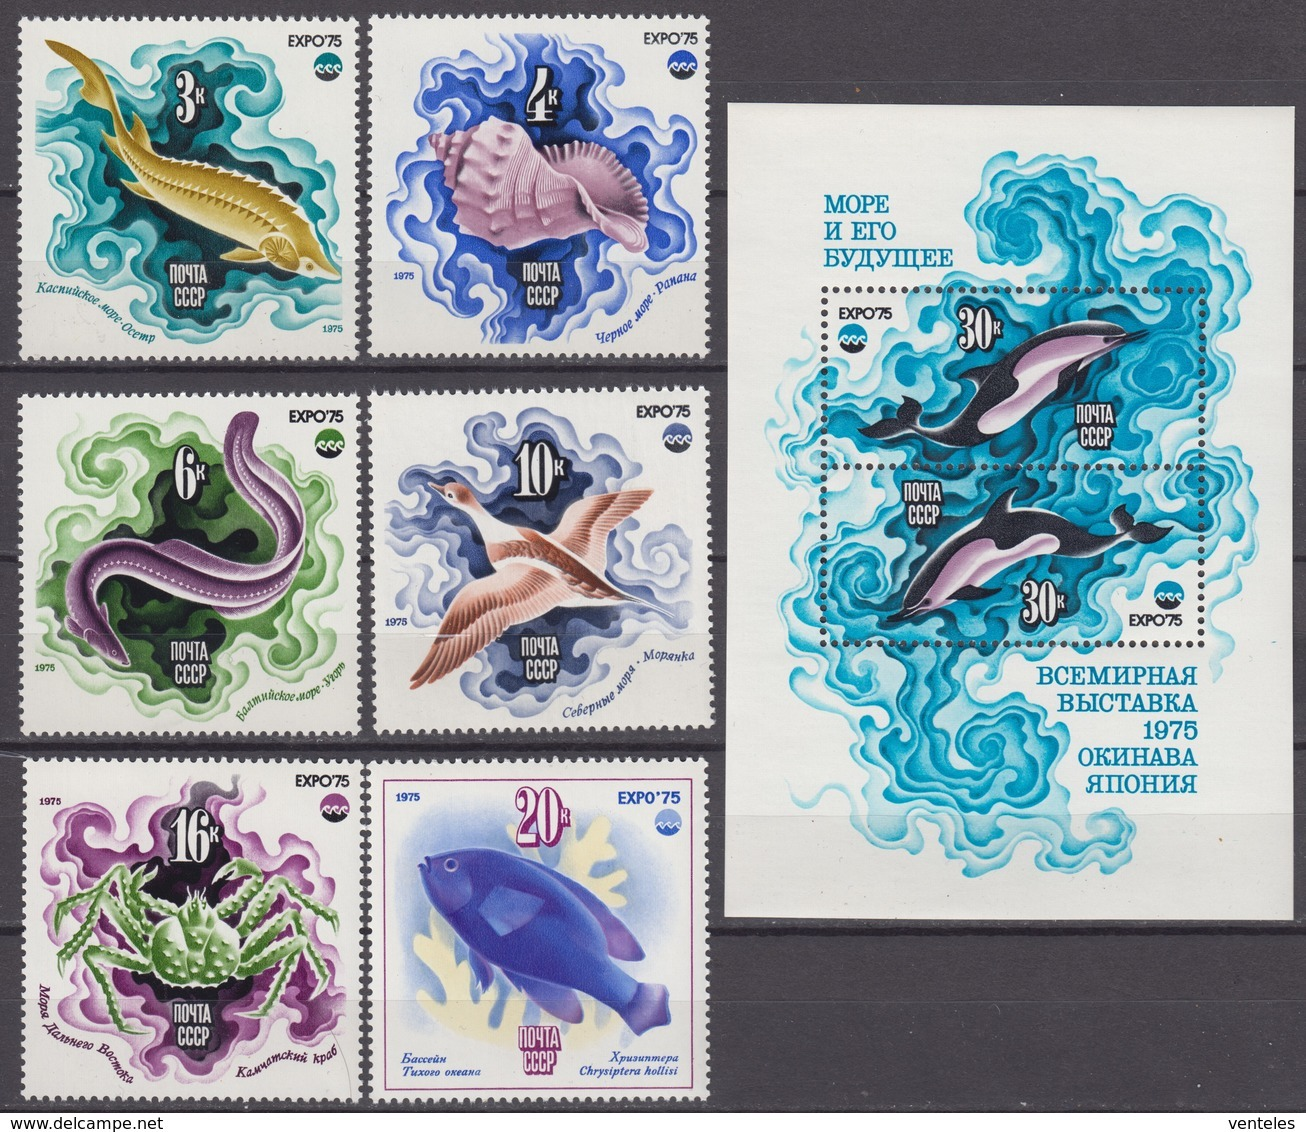 Russia, USSR 18.07.1975 Mi # 4376-81 Bl 106, EXPO'75 Special Exhibition, Okinawa, MNH OG - Nuevos